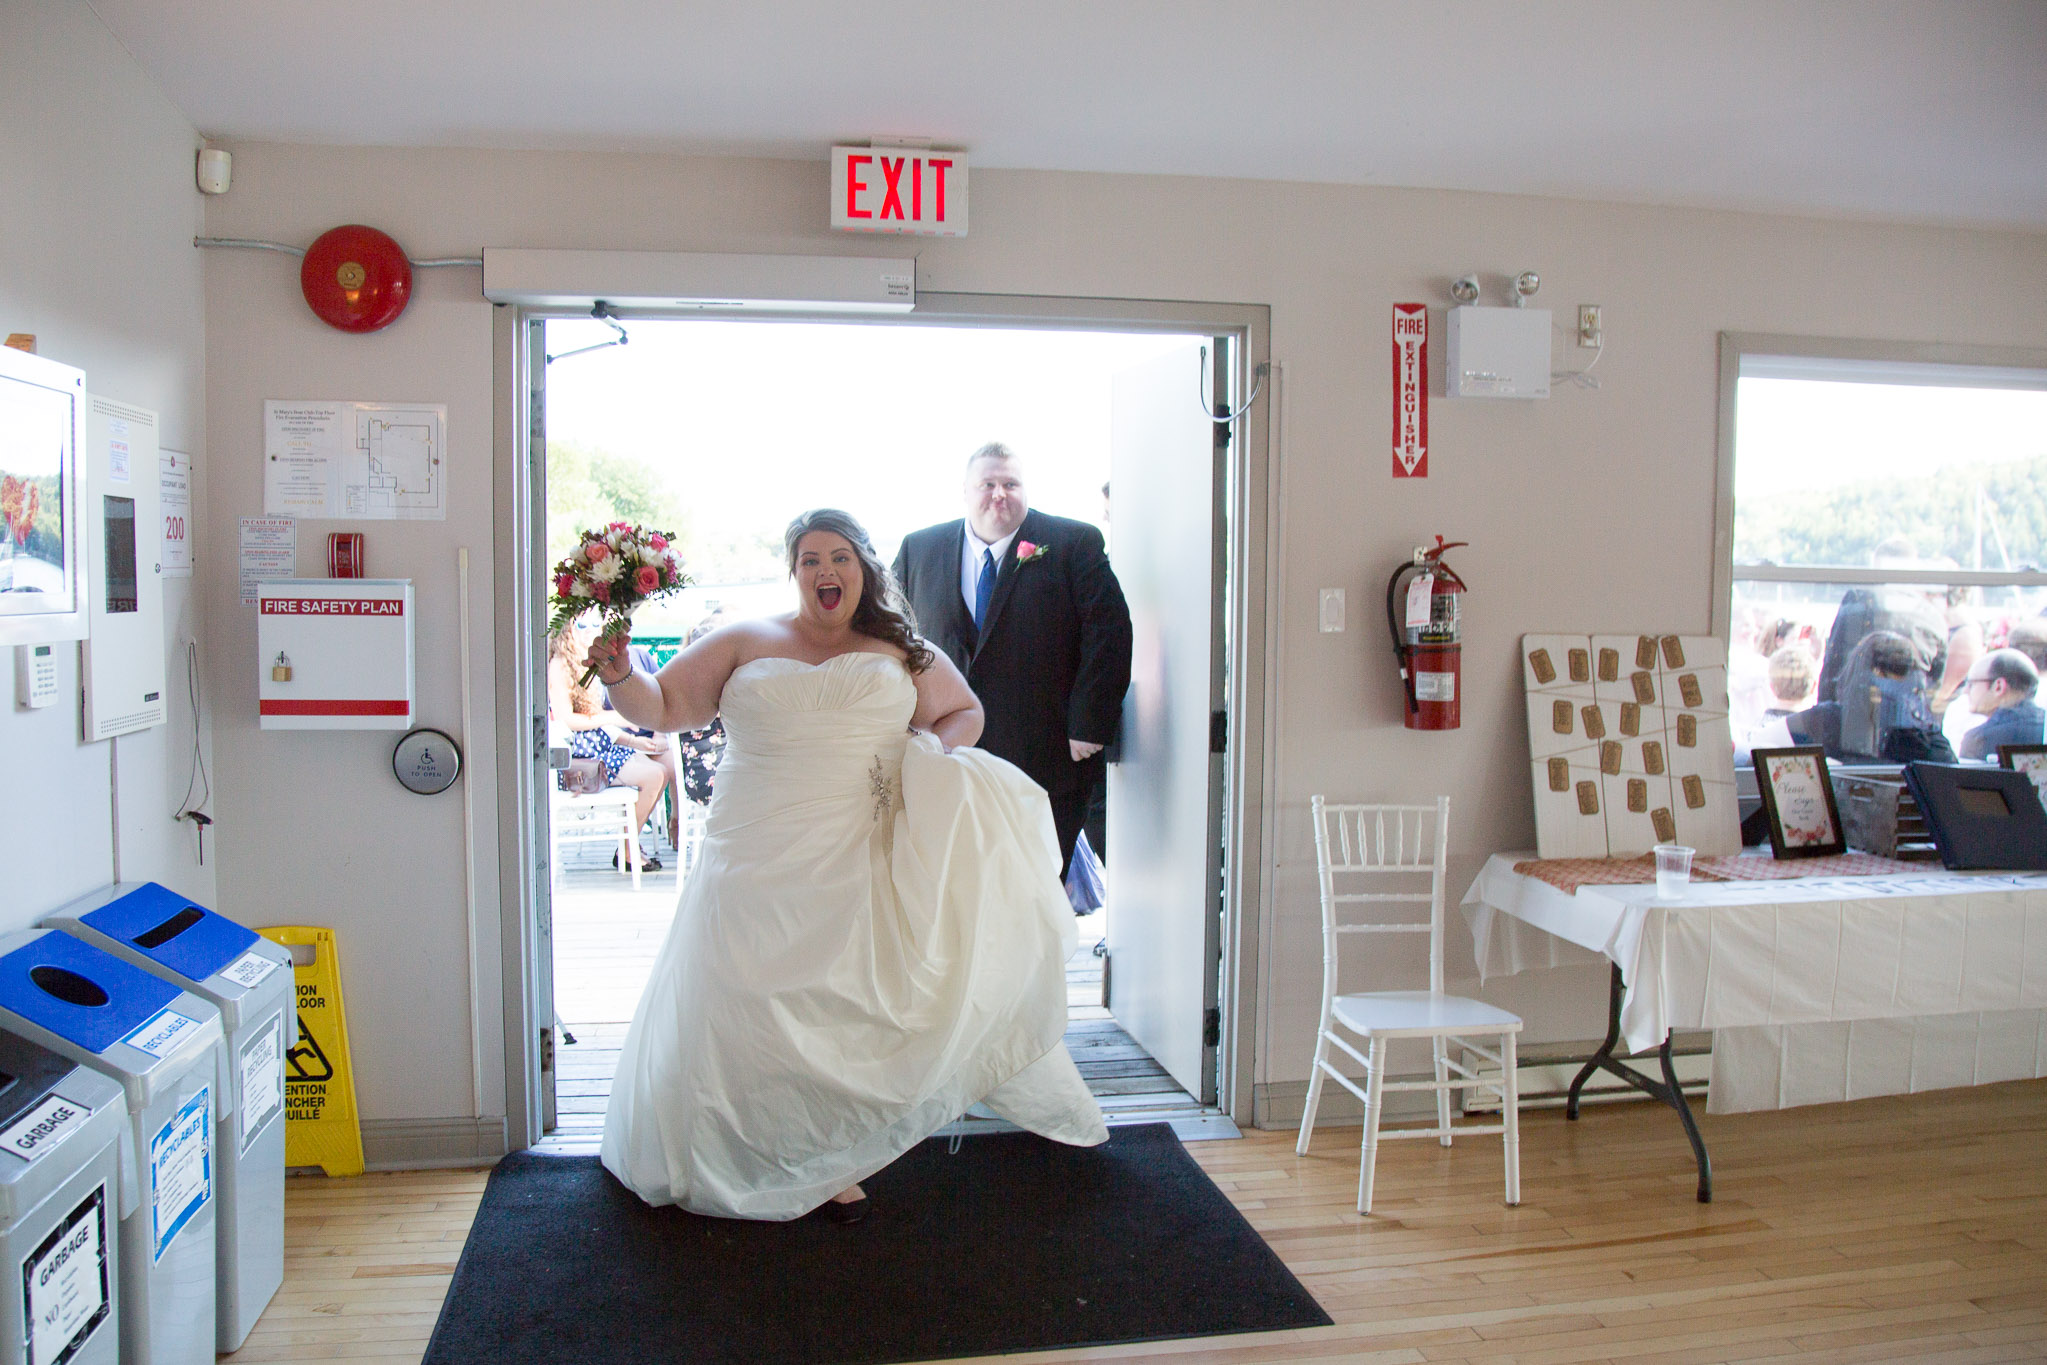 Image of bride and groom entering venue at Saint Mary's boat club